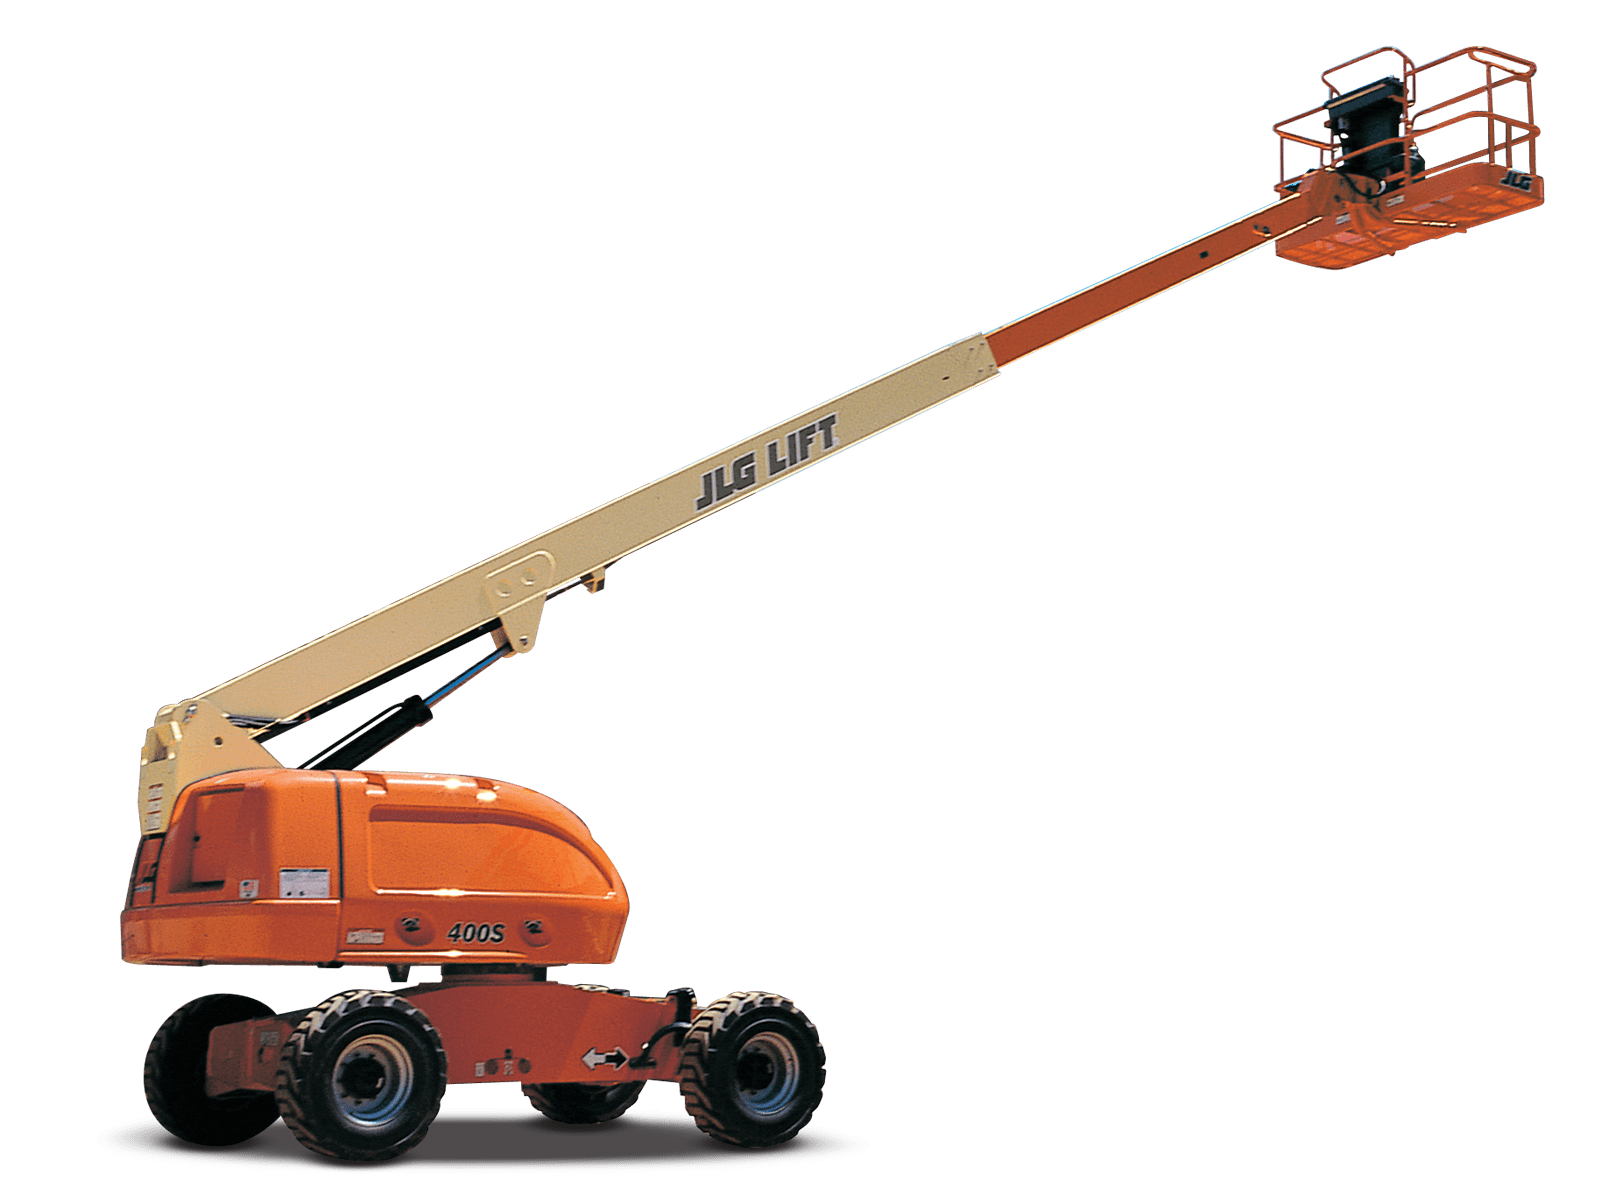 hight resolution of jlg boom lift troubleshooting